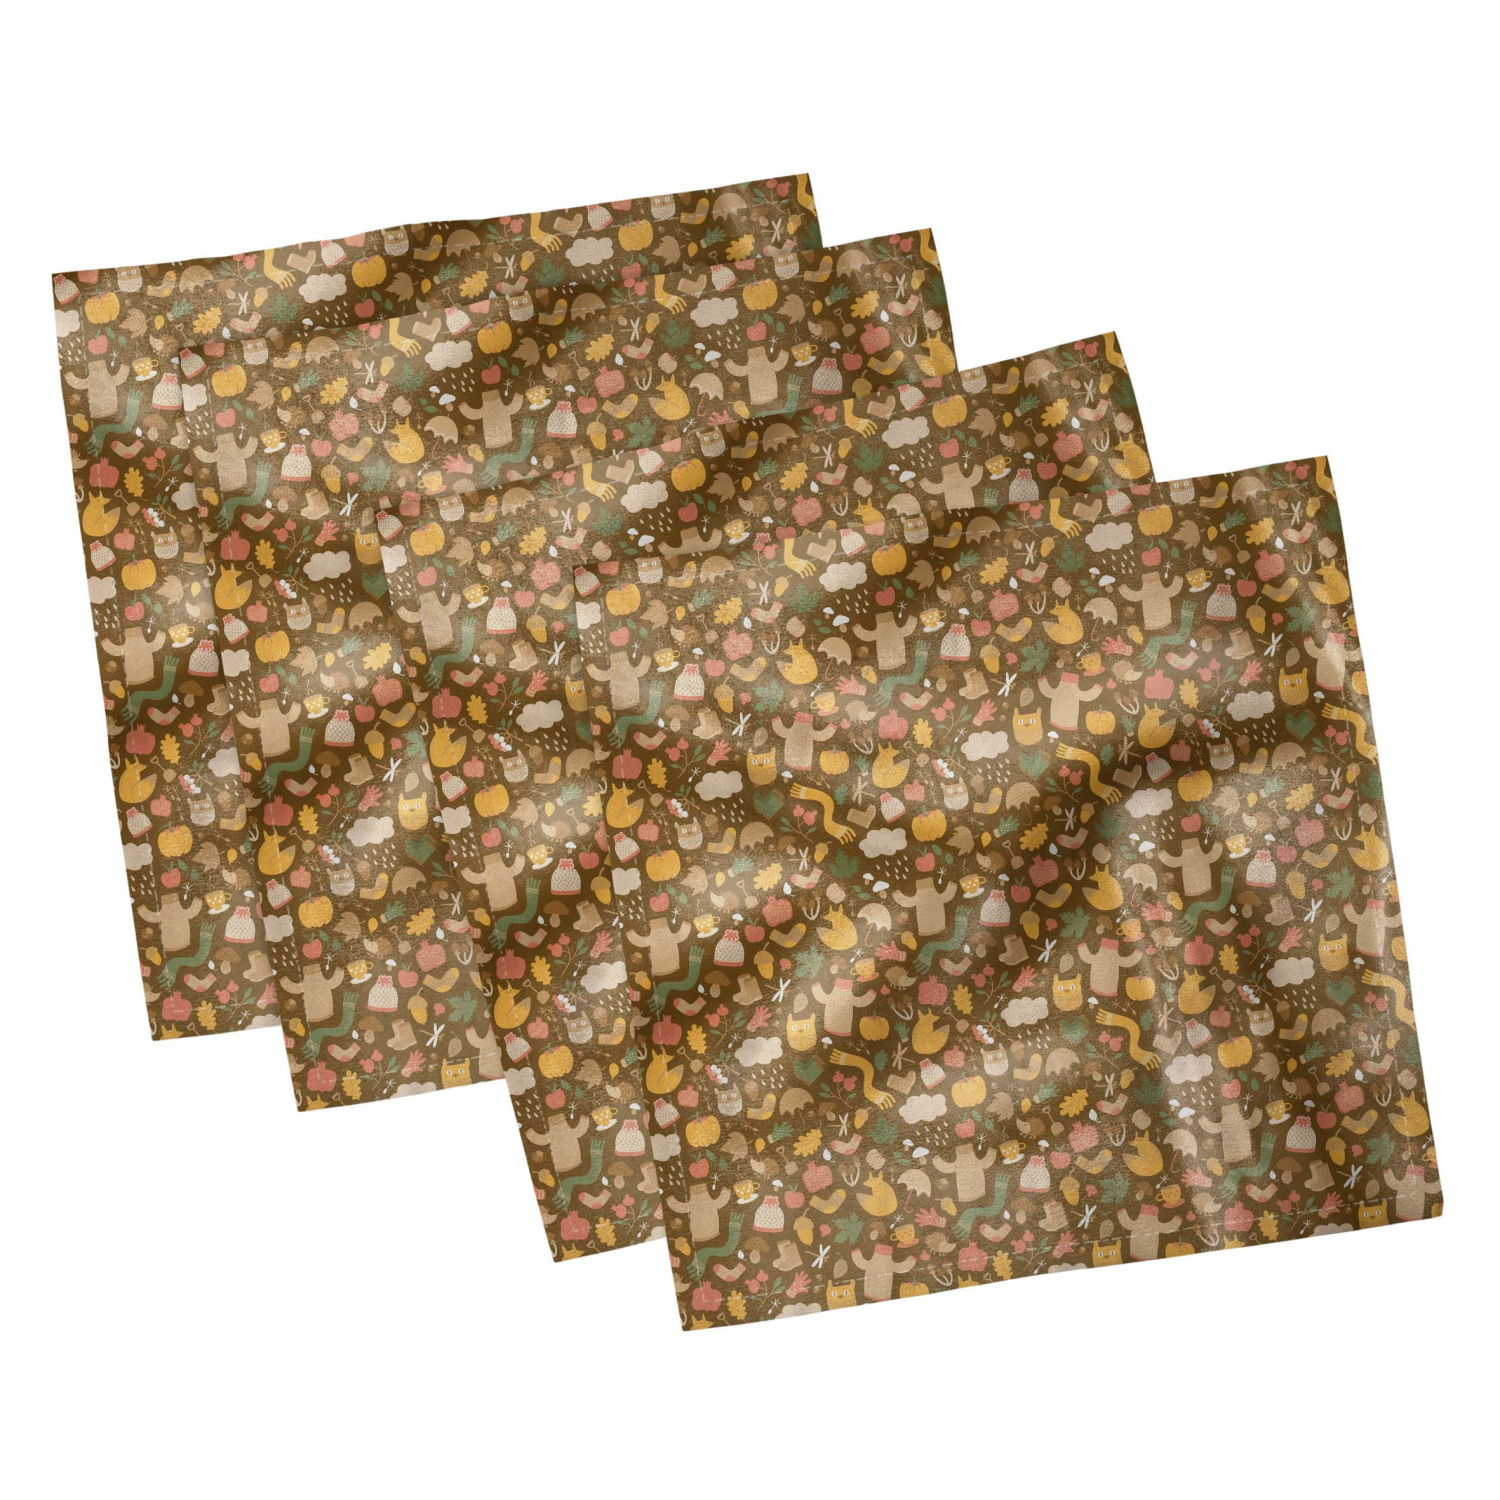 thumbnail 41 - Ambesonne Autumn Fall Decorative Satin Napkins Set of 4 Party Dinner Fabric